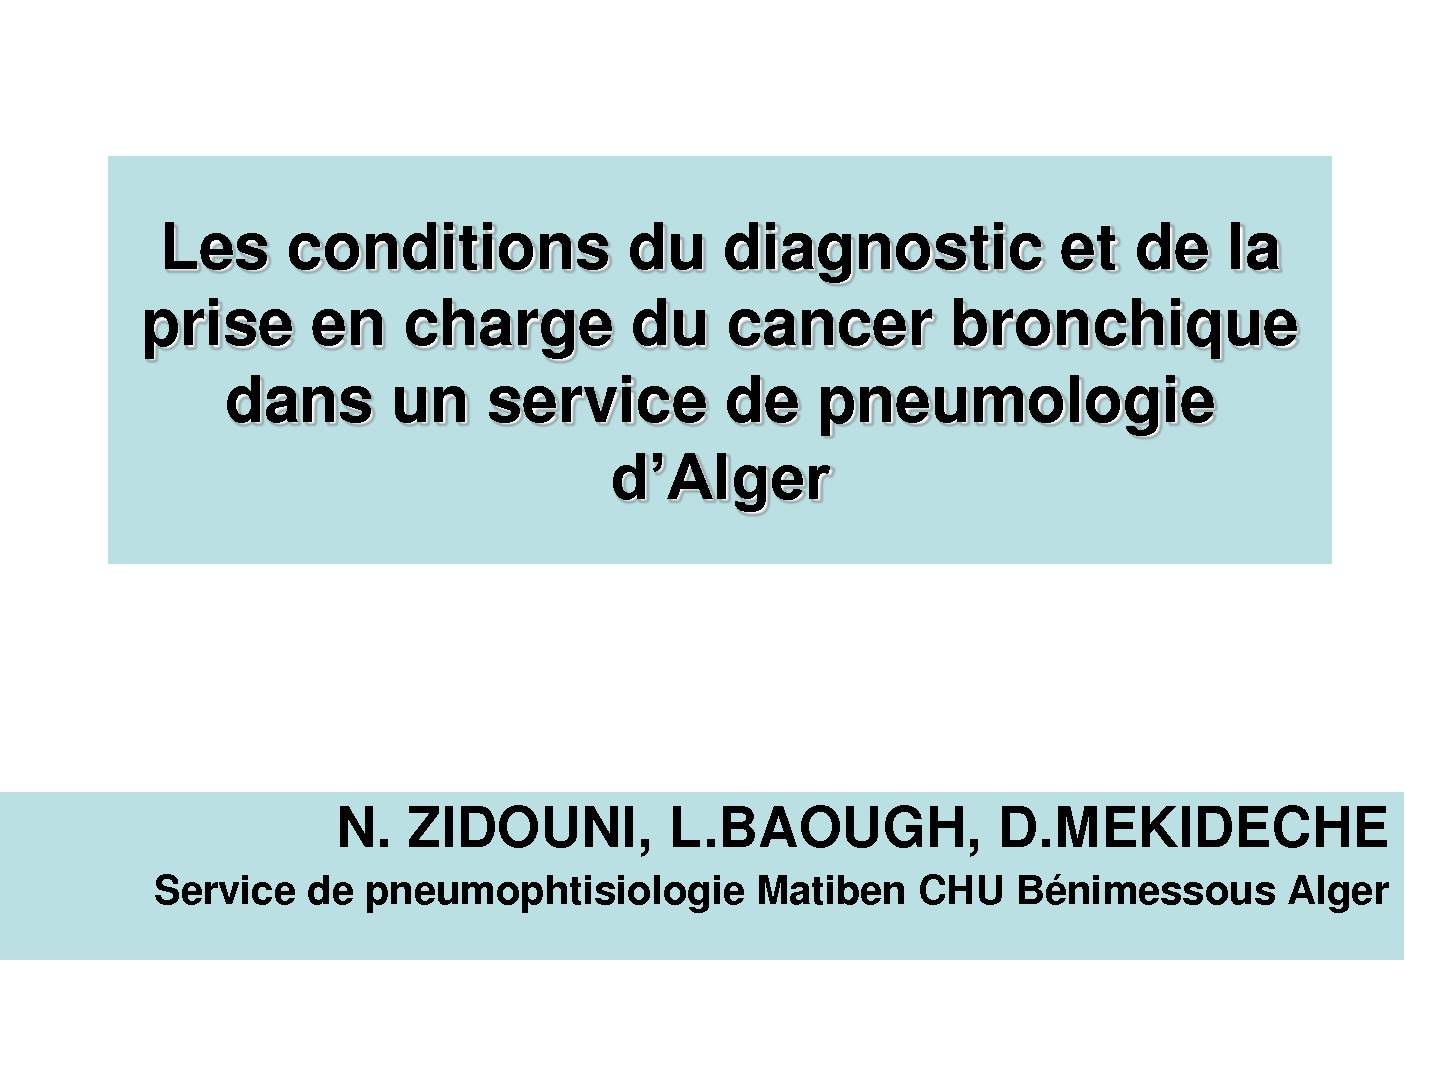 Les conditions du diagnostic et de la prise en charge du cancer bronchique dans un service de pneumologie d'Alger. N. Zidouni